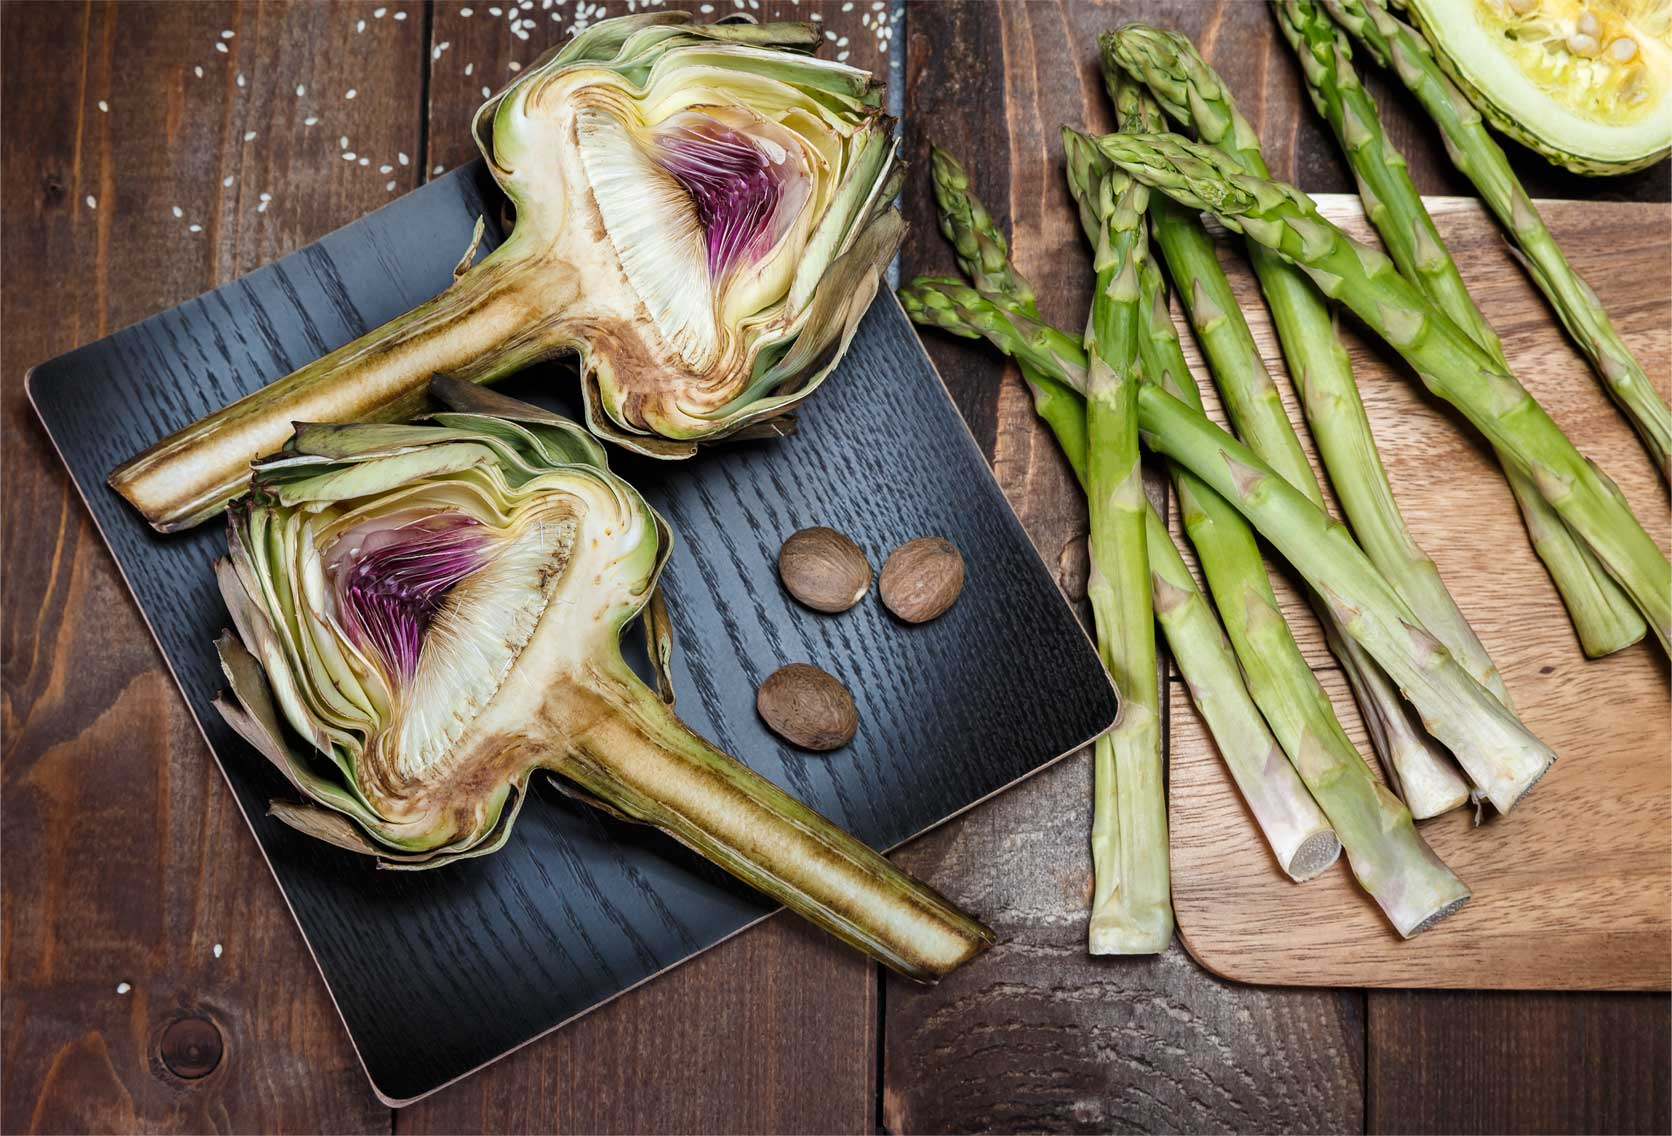 Beautiful fresh artichoke and asparagus being prepared for grilling